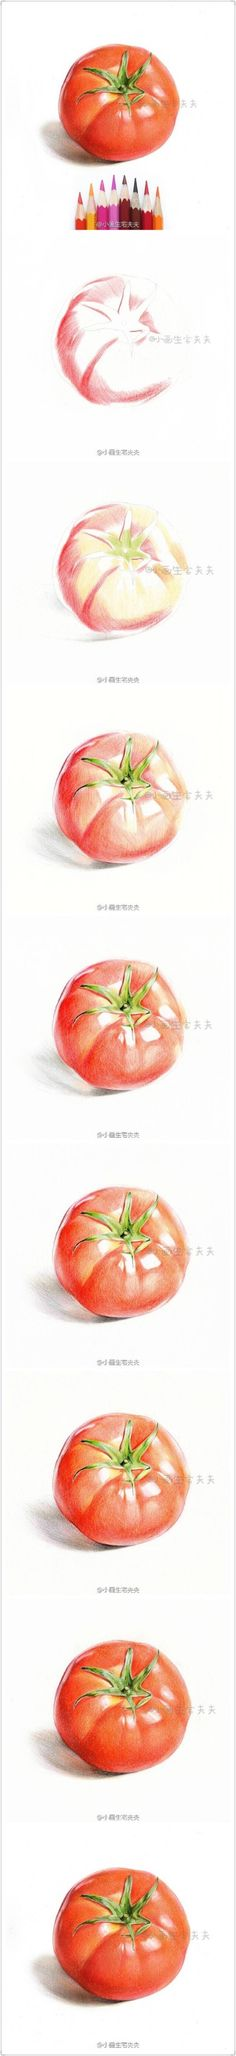 Colorin tomato step by step